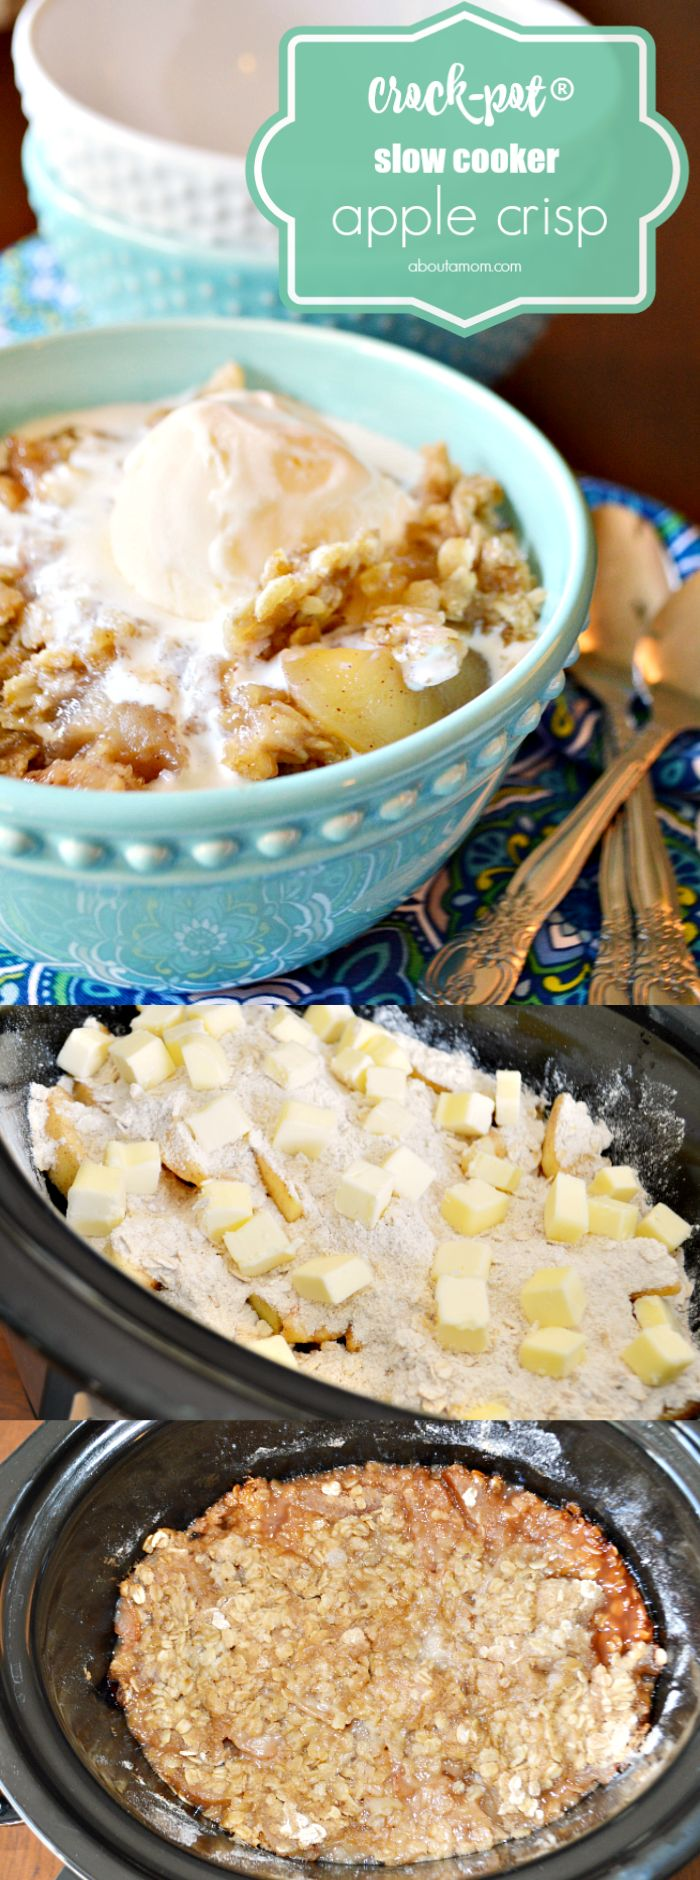 Slow Cooker Apple Crisp is a warm and comforting fall dessert that is easy to prepare. This Crock Pot dessert is exactly the type of recipe you want on a chilly fall day.